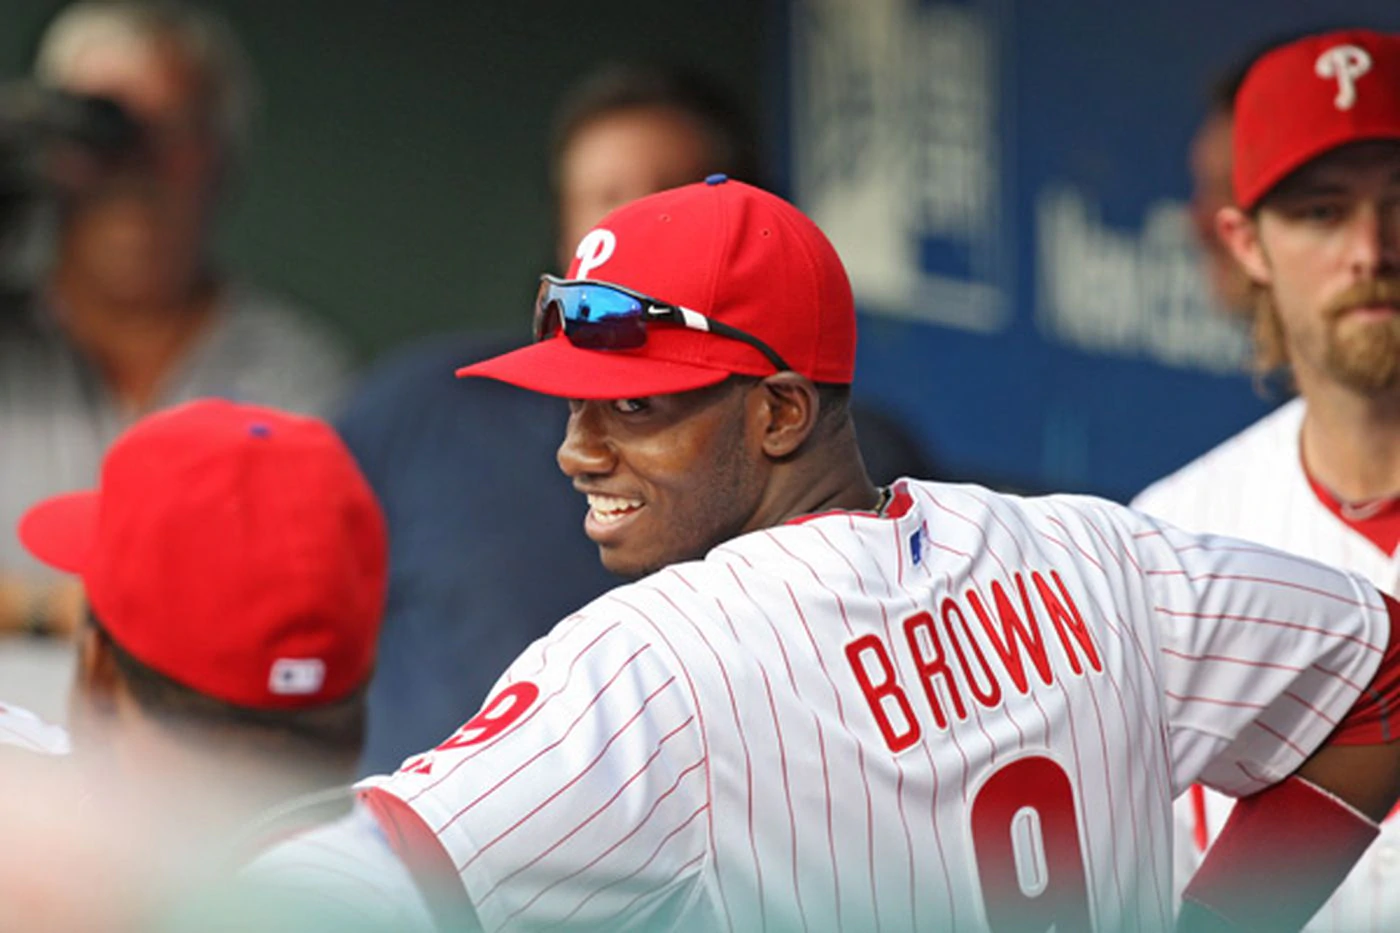 Former Phillies Outfielder Domonic Brown Finds New Career at East Norriton's Athletes Academy